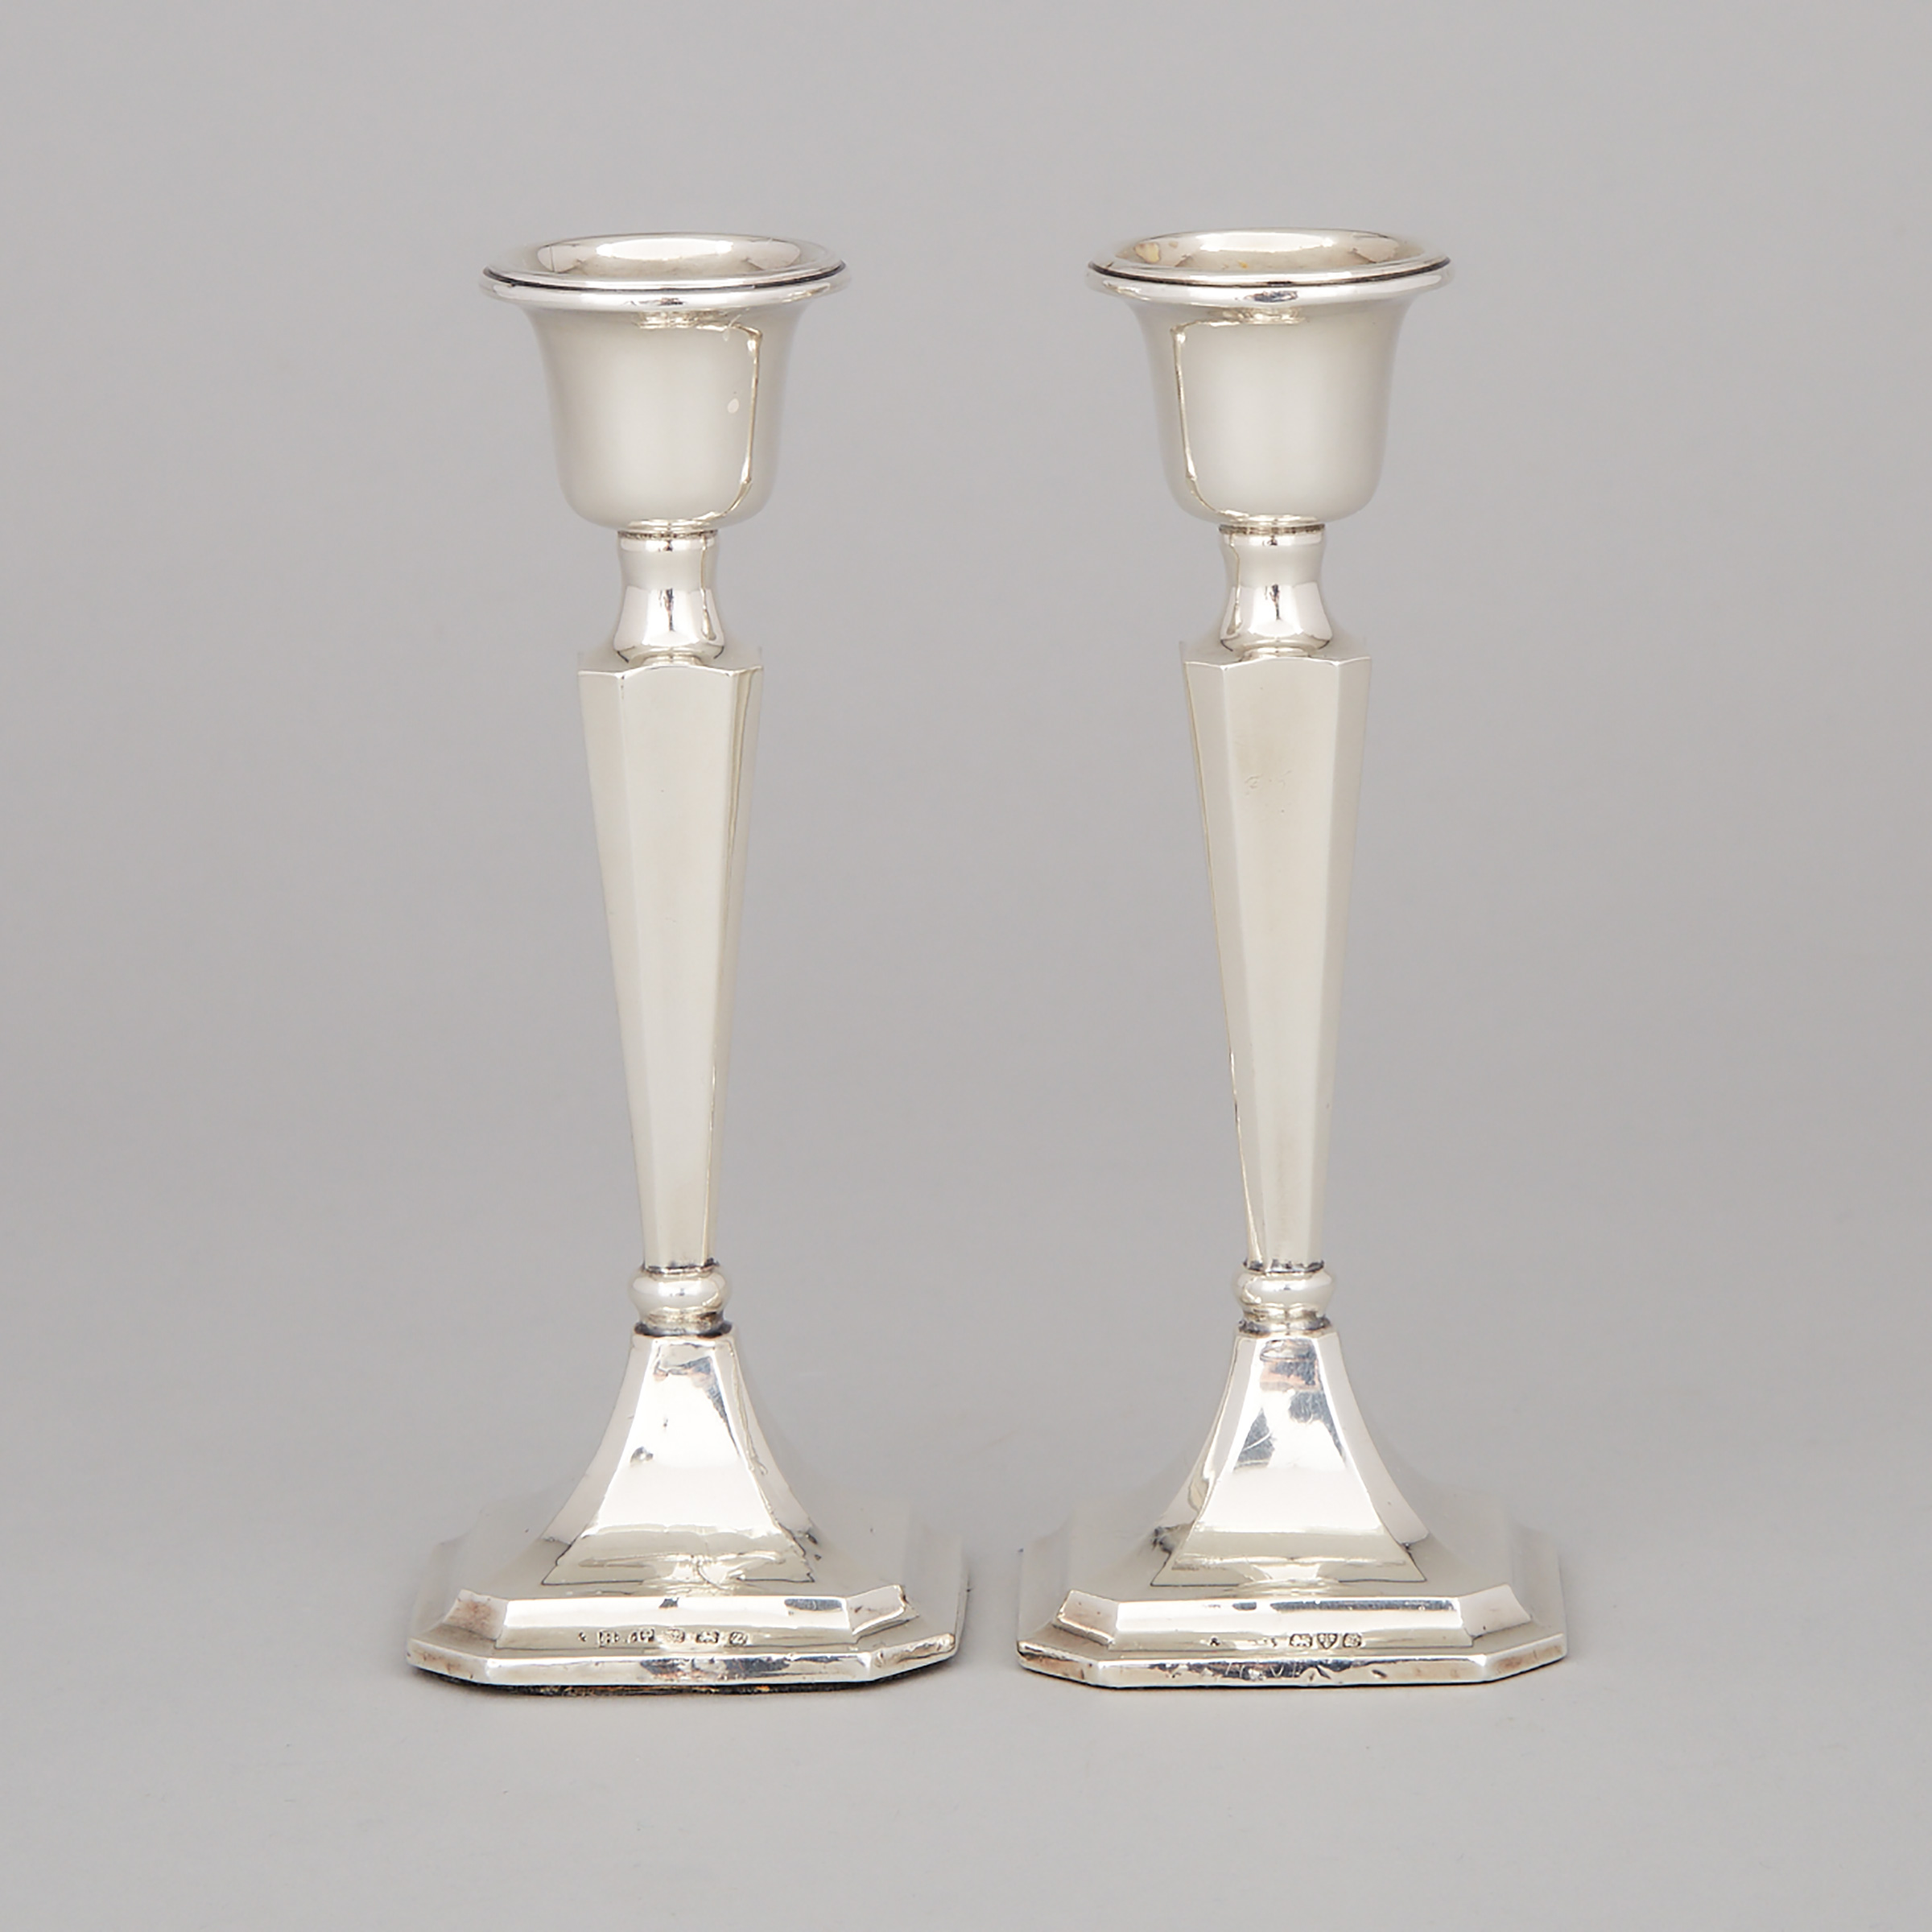 Pair of English Silver Desk Candlesticks, Birmingham, 1924 and Chester, 1925